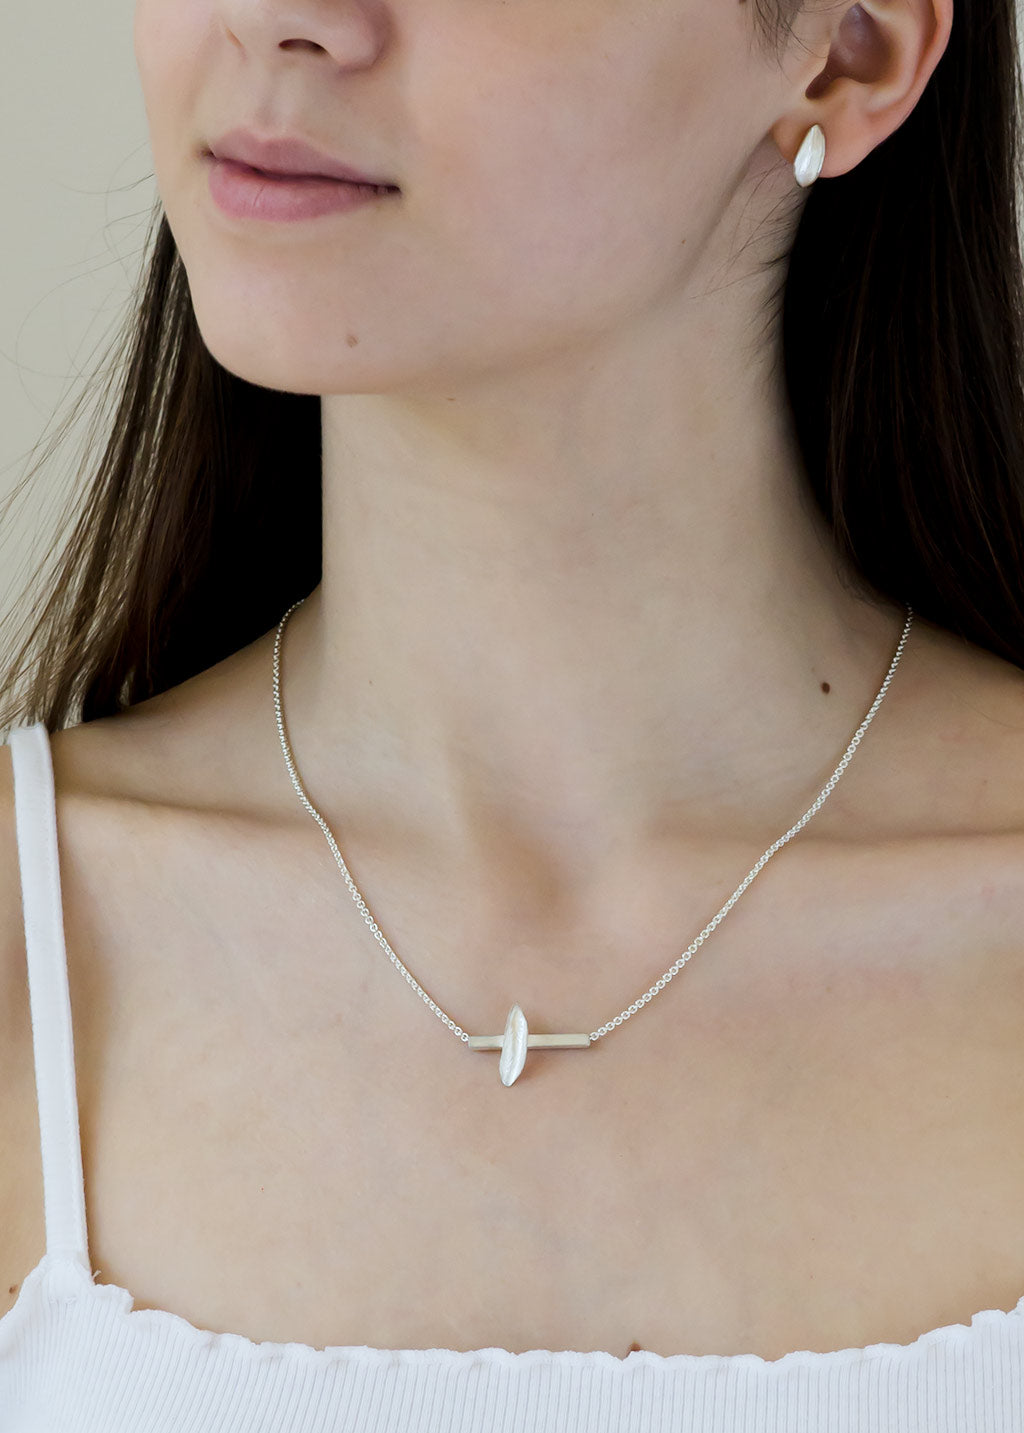 sterling silver hug earrings and leaf bar necklace, artist made jewelry from Seattle WA